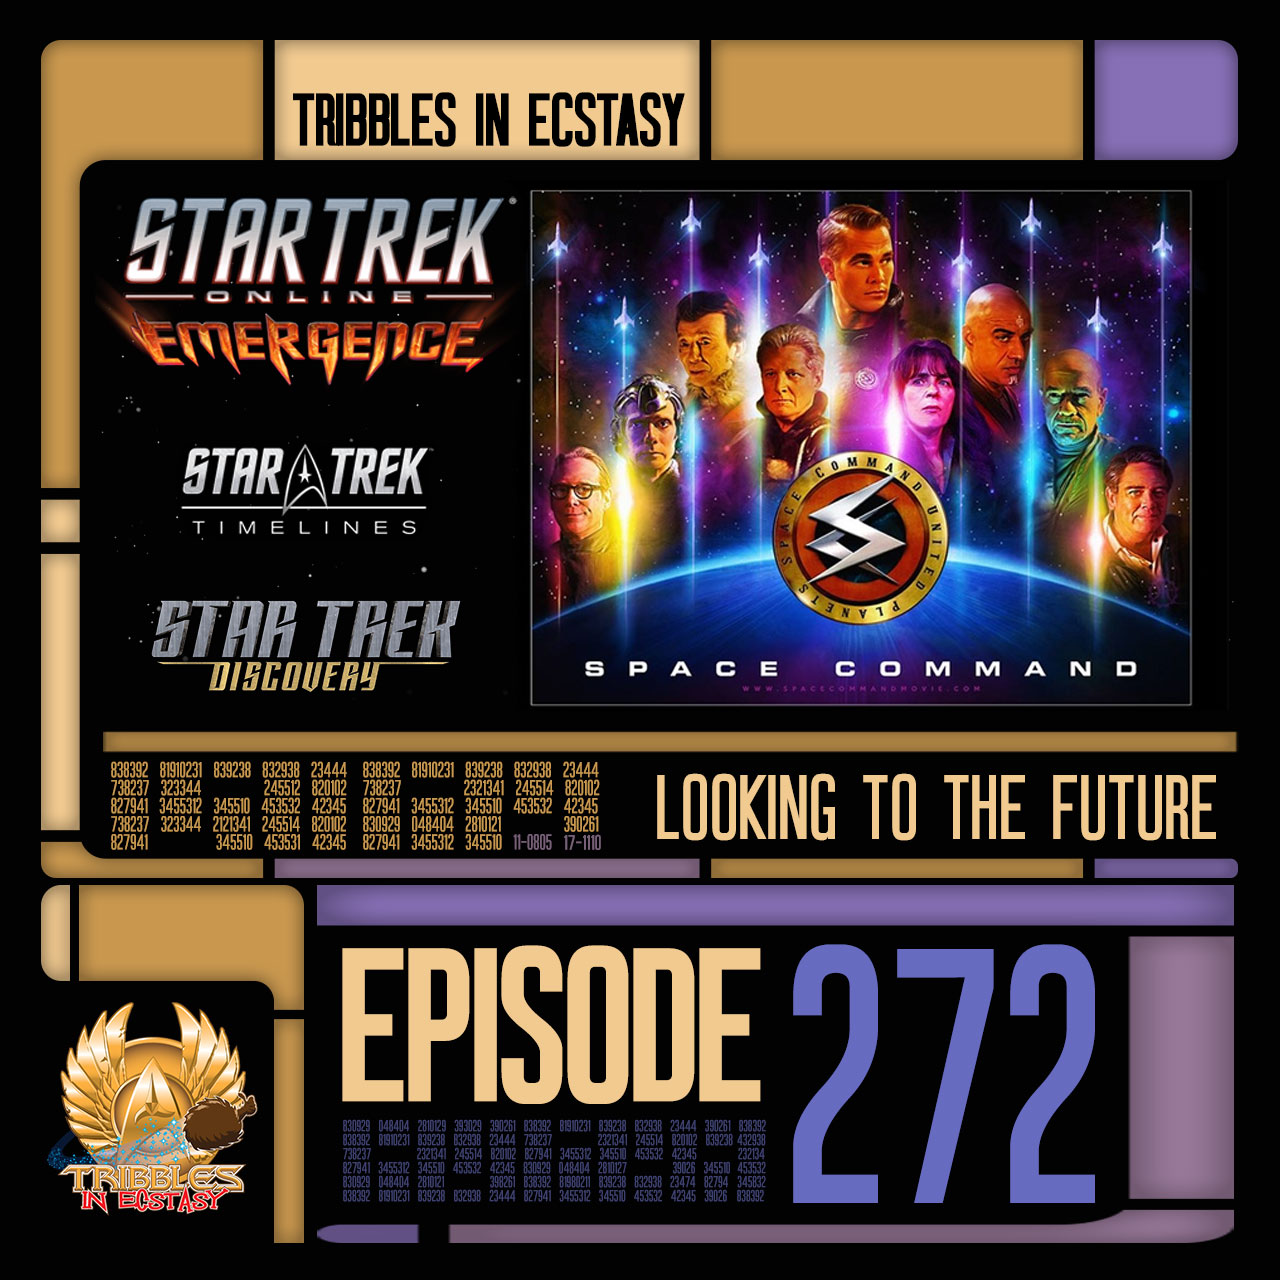 Tribbles in Ecstasy Episode 272